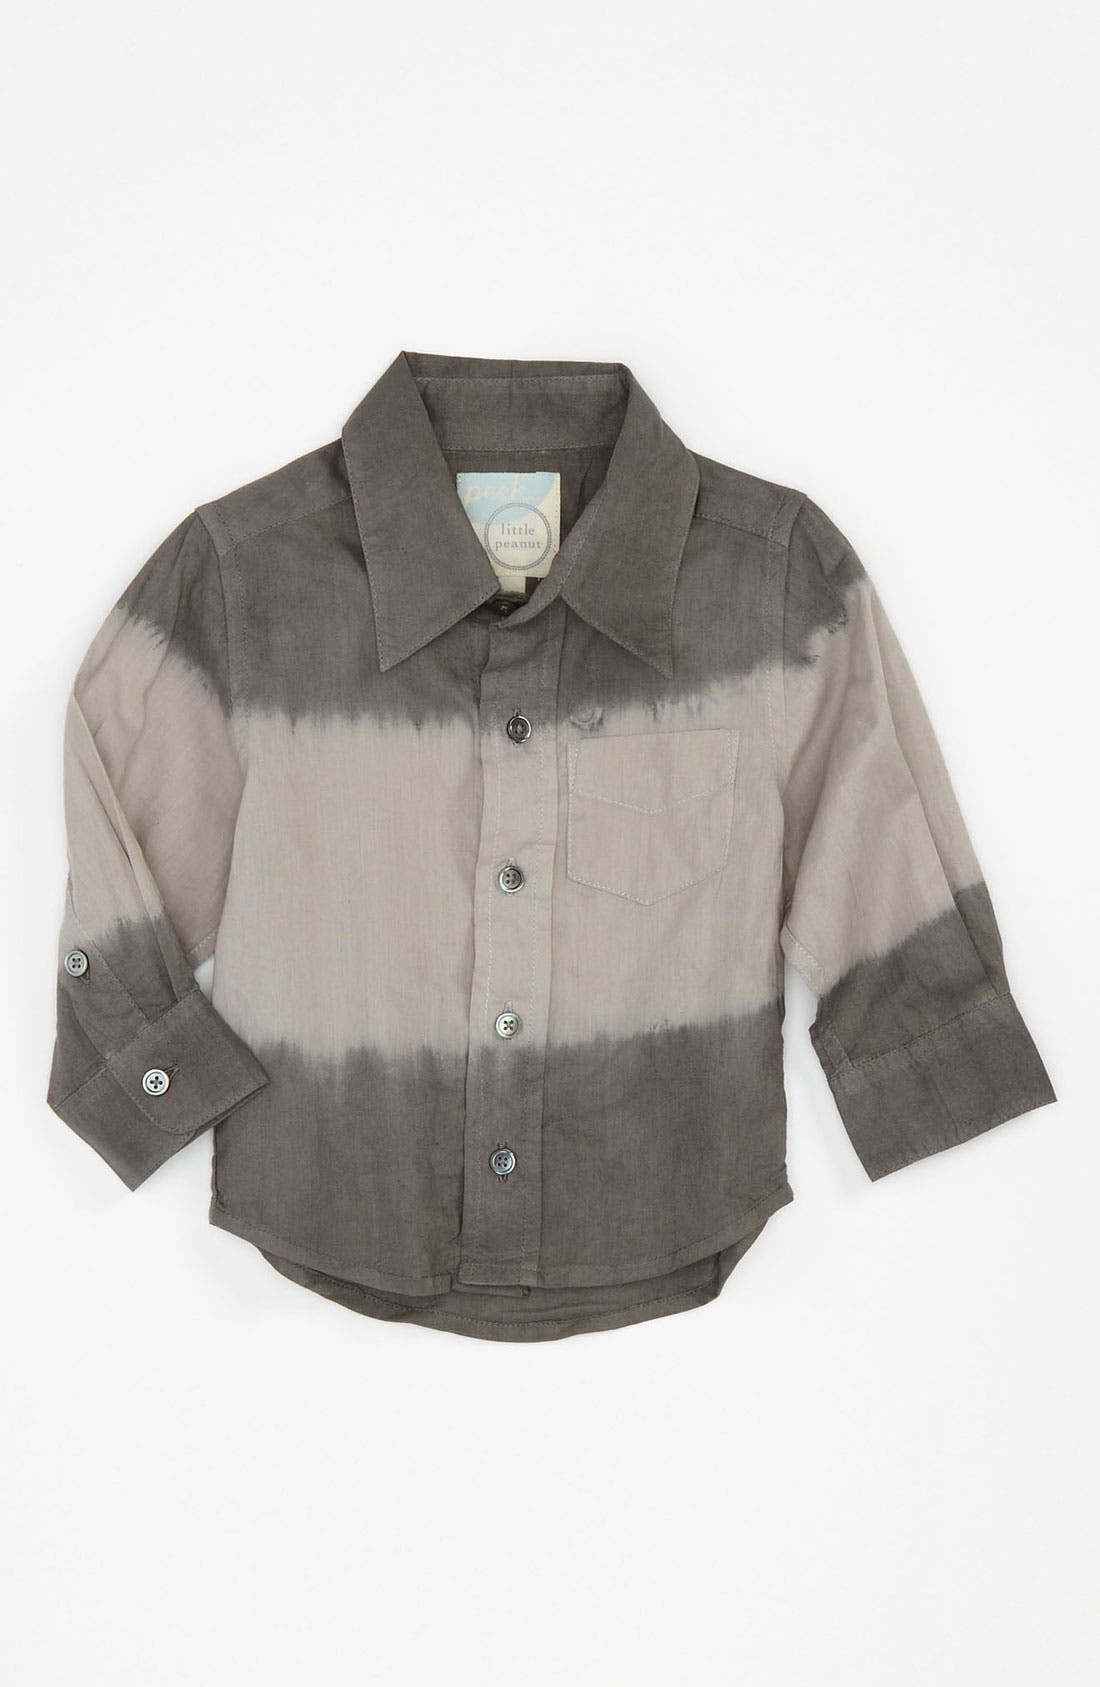 Alternate Image 1 Selected - Peek 'Dylan' Dip Dye Shirt (Infant)